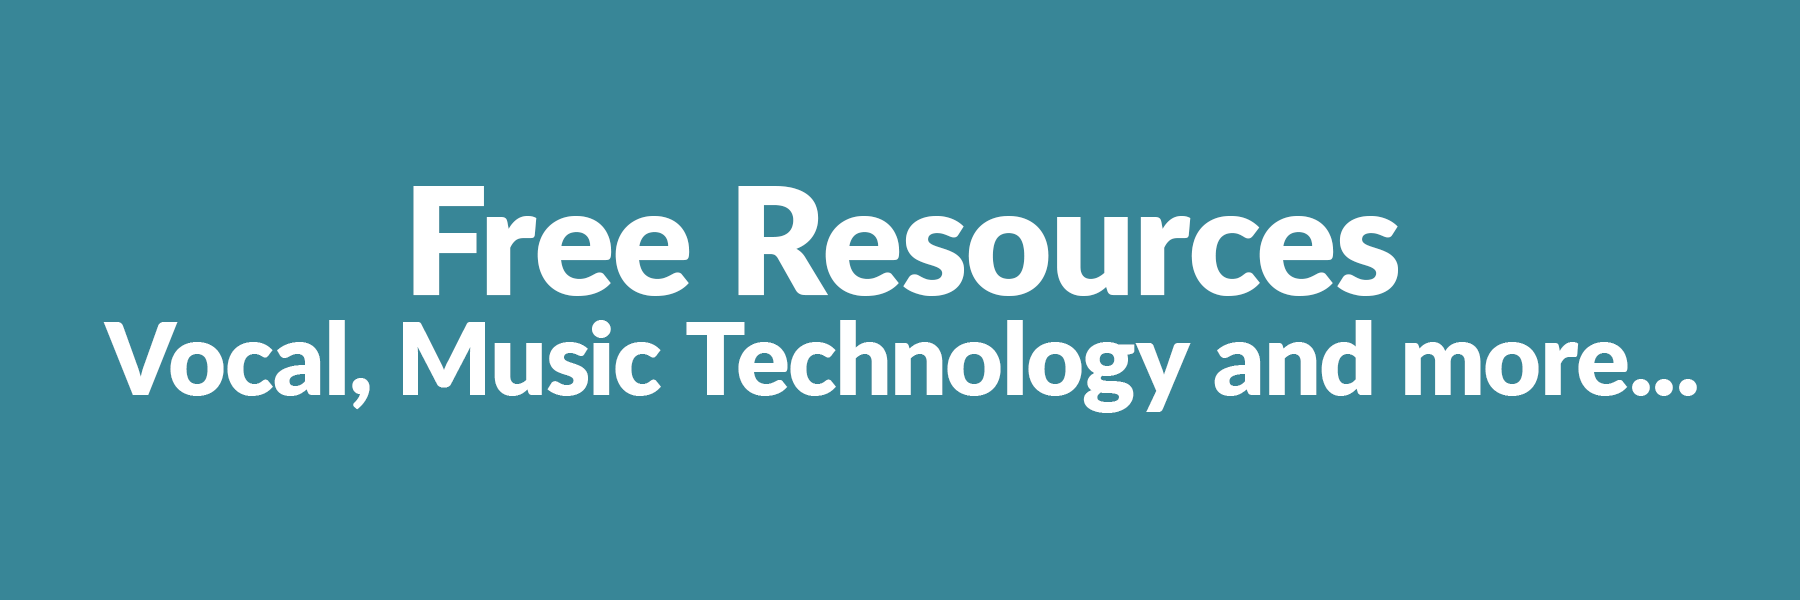 Free vocal, music technology and other resources